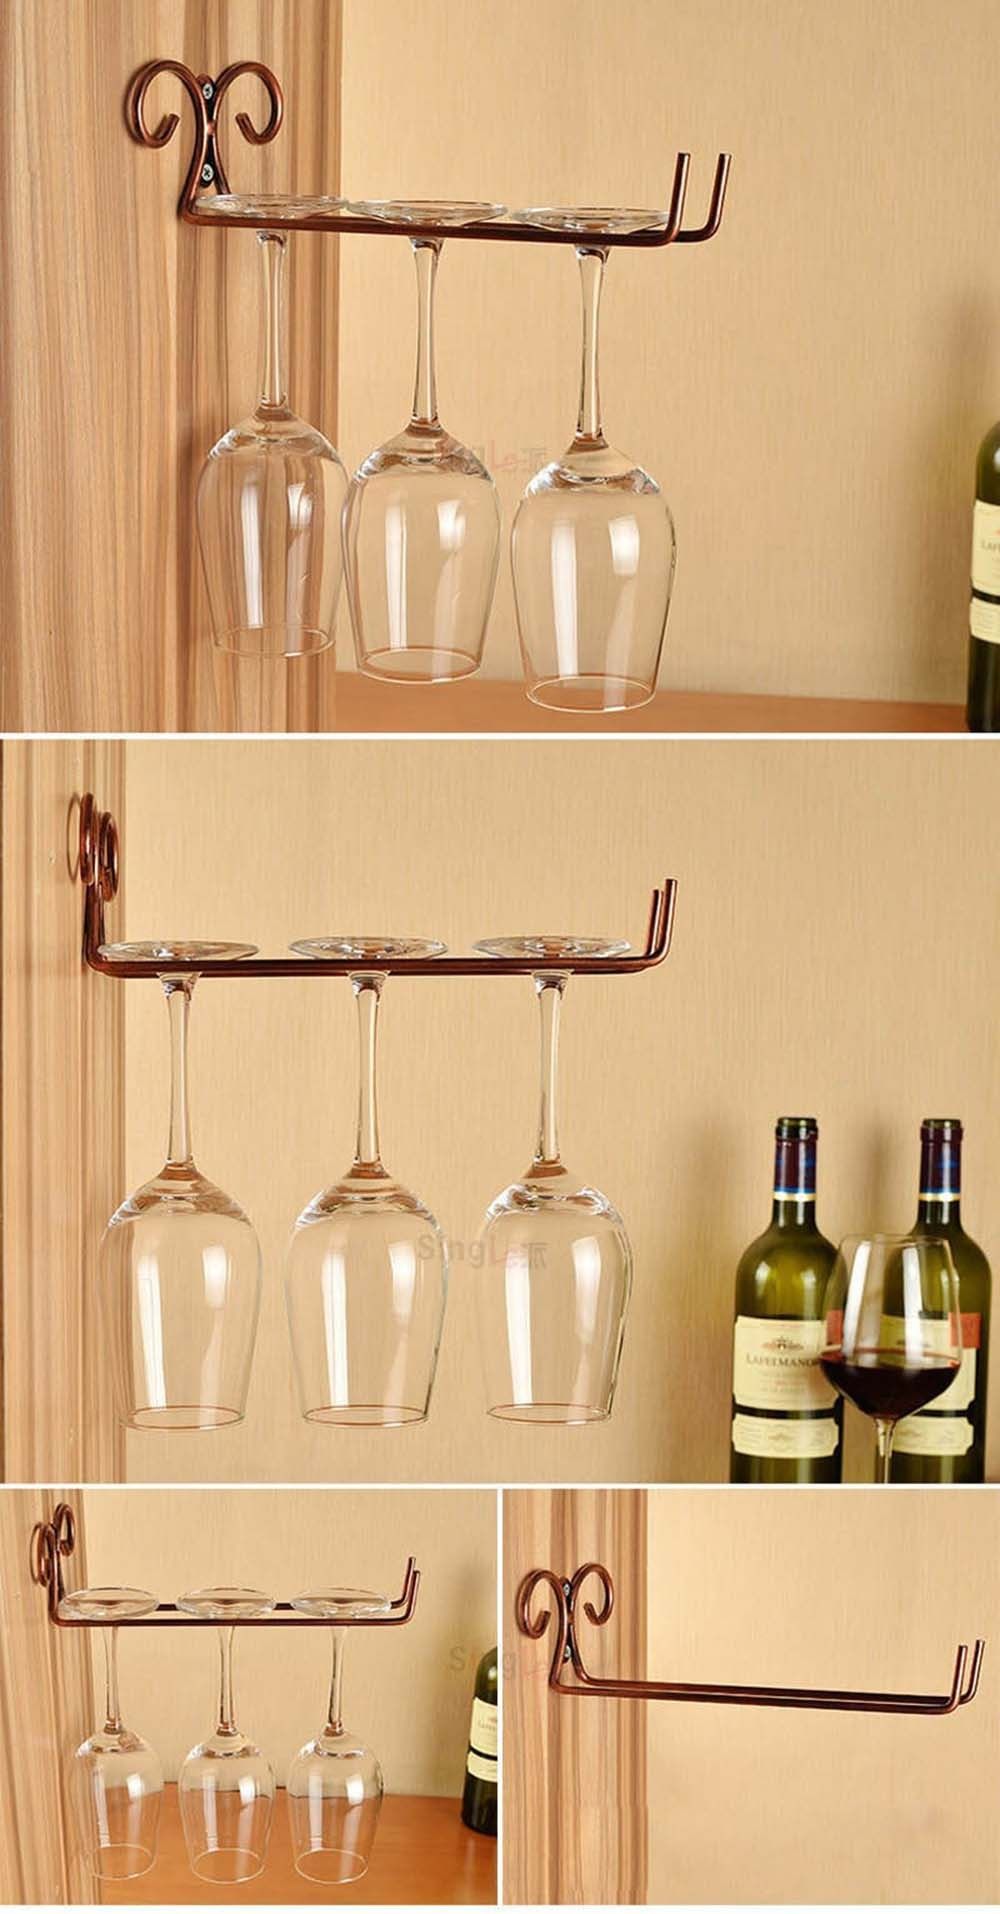 Hanging-Metal-Wine-Cup-Rack-SilverGold-Bar-SingleDouble-Rack-Wine-Stemware-Glass-Bottle-Goblet-Inverted-Holder-KC0026 (7)